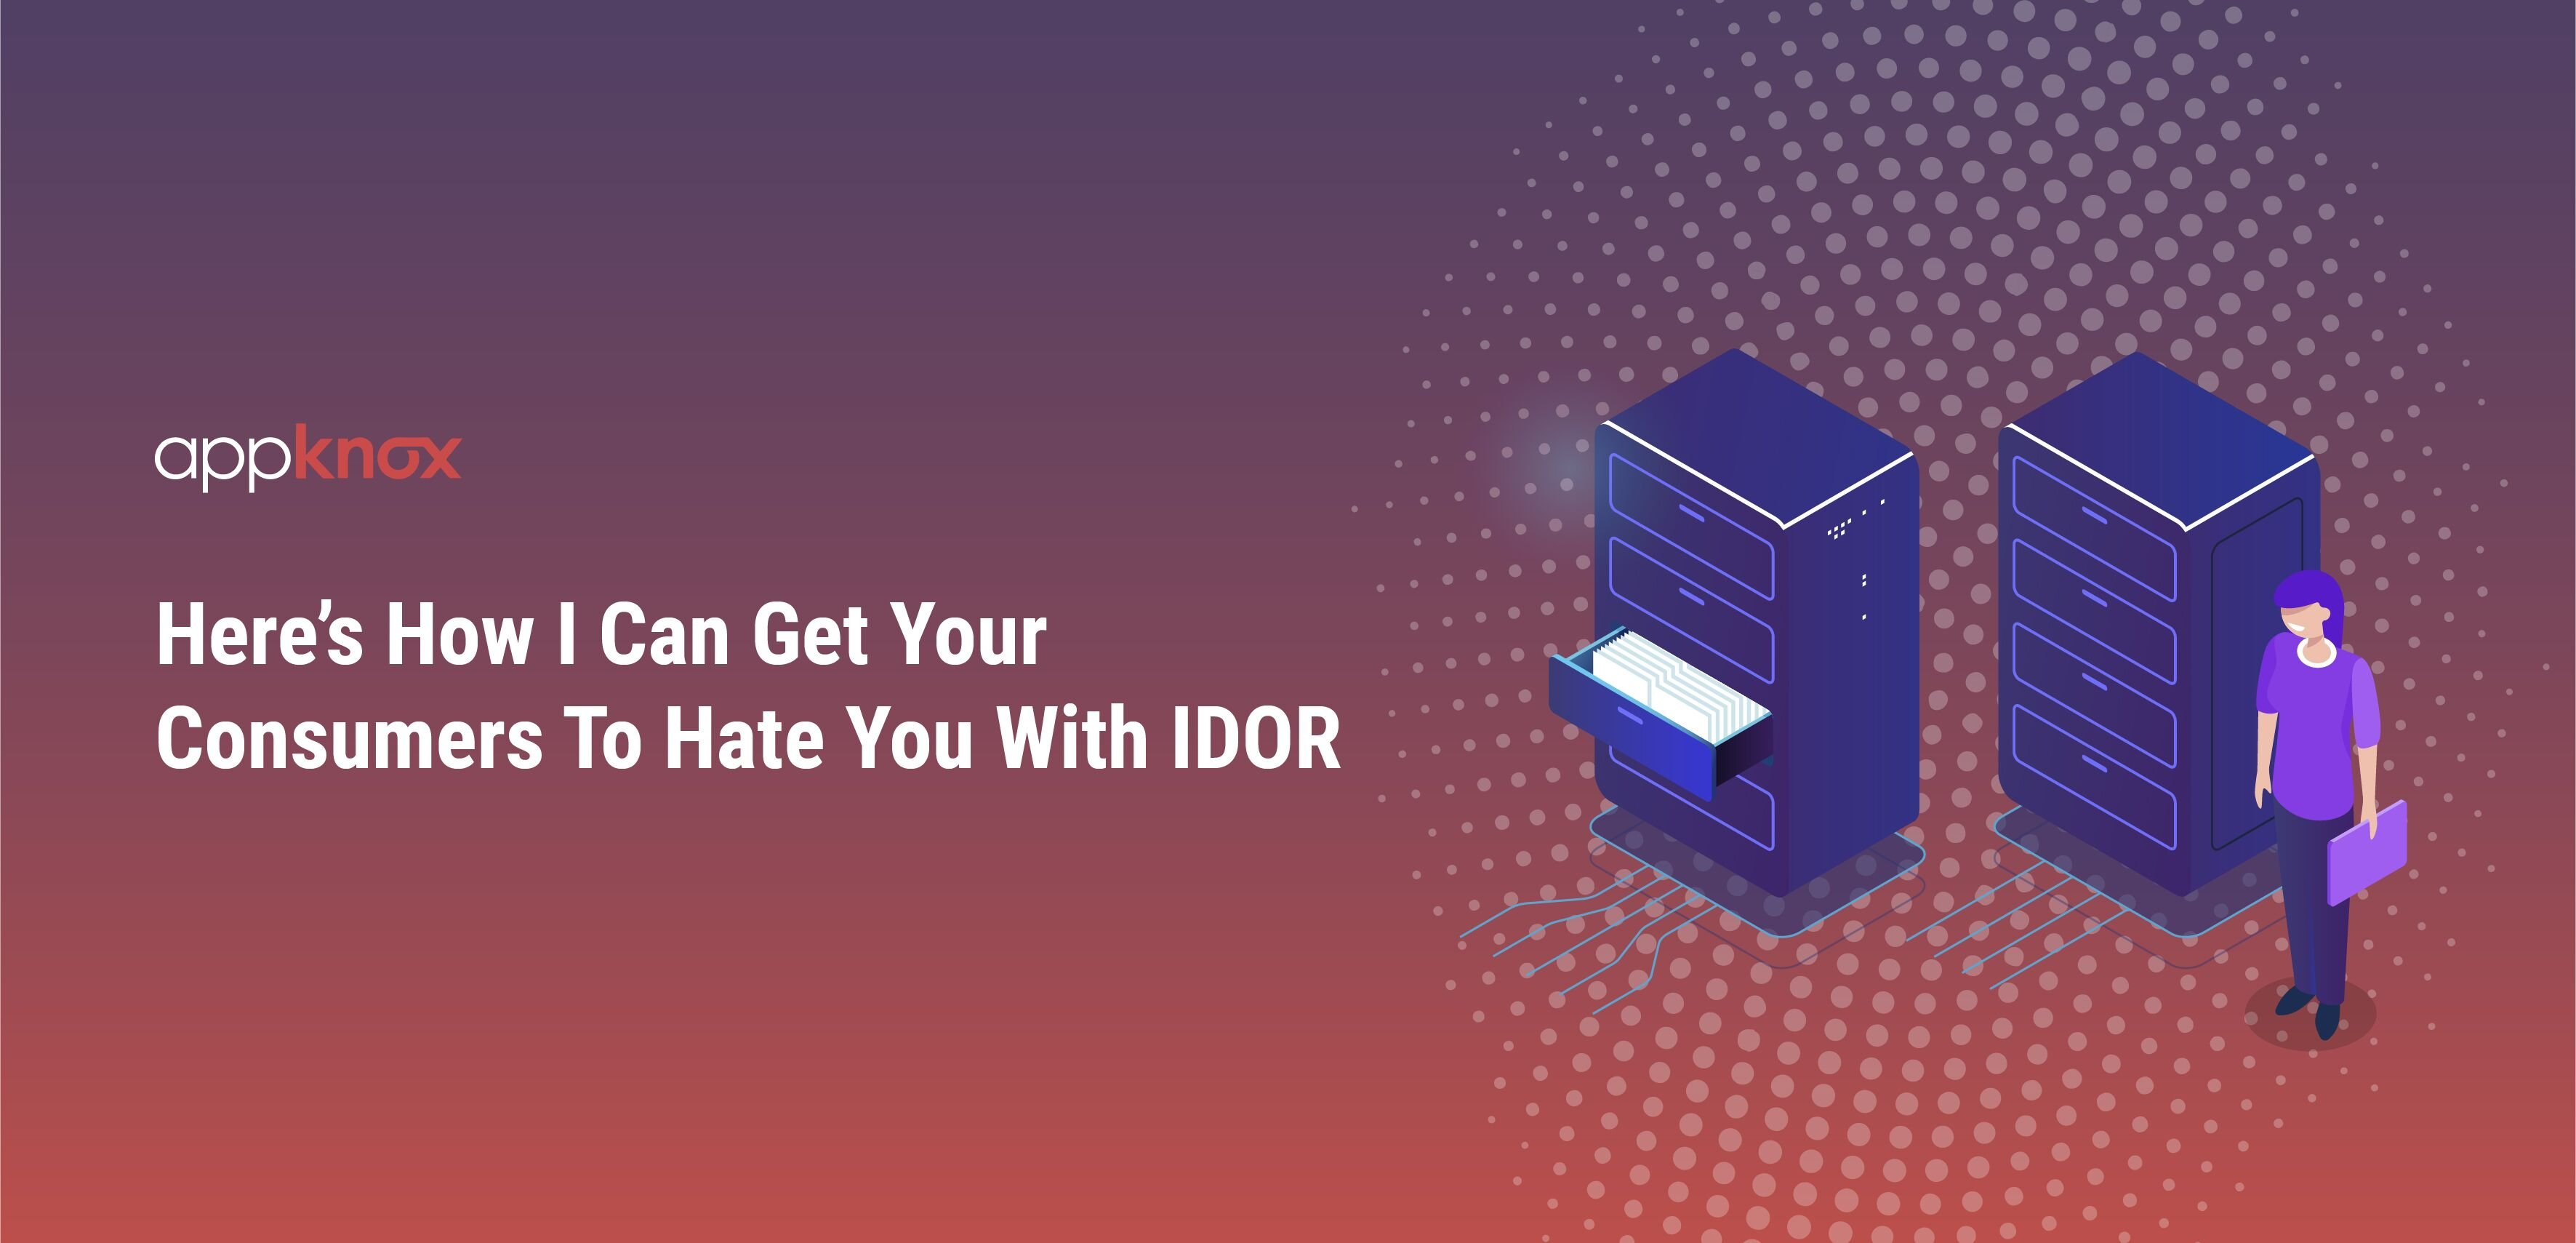 Here's How I Can Get Your Consumers To Hate You With IDOR